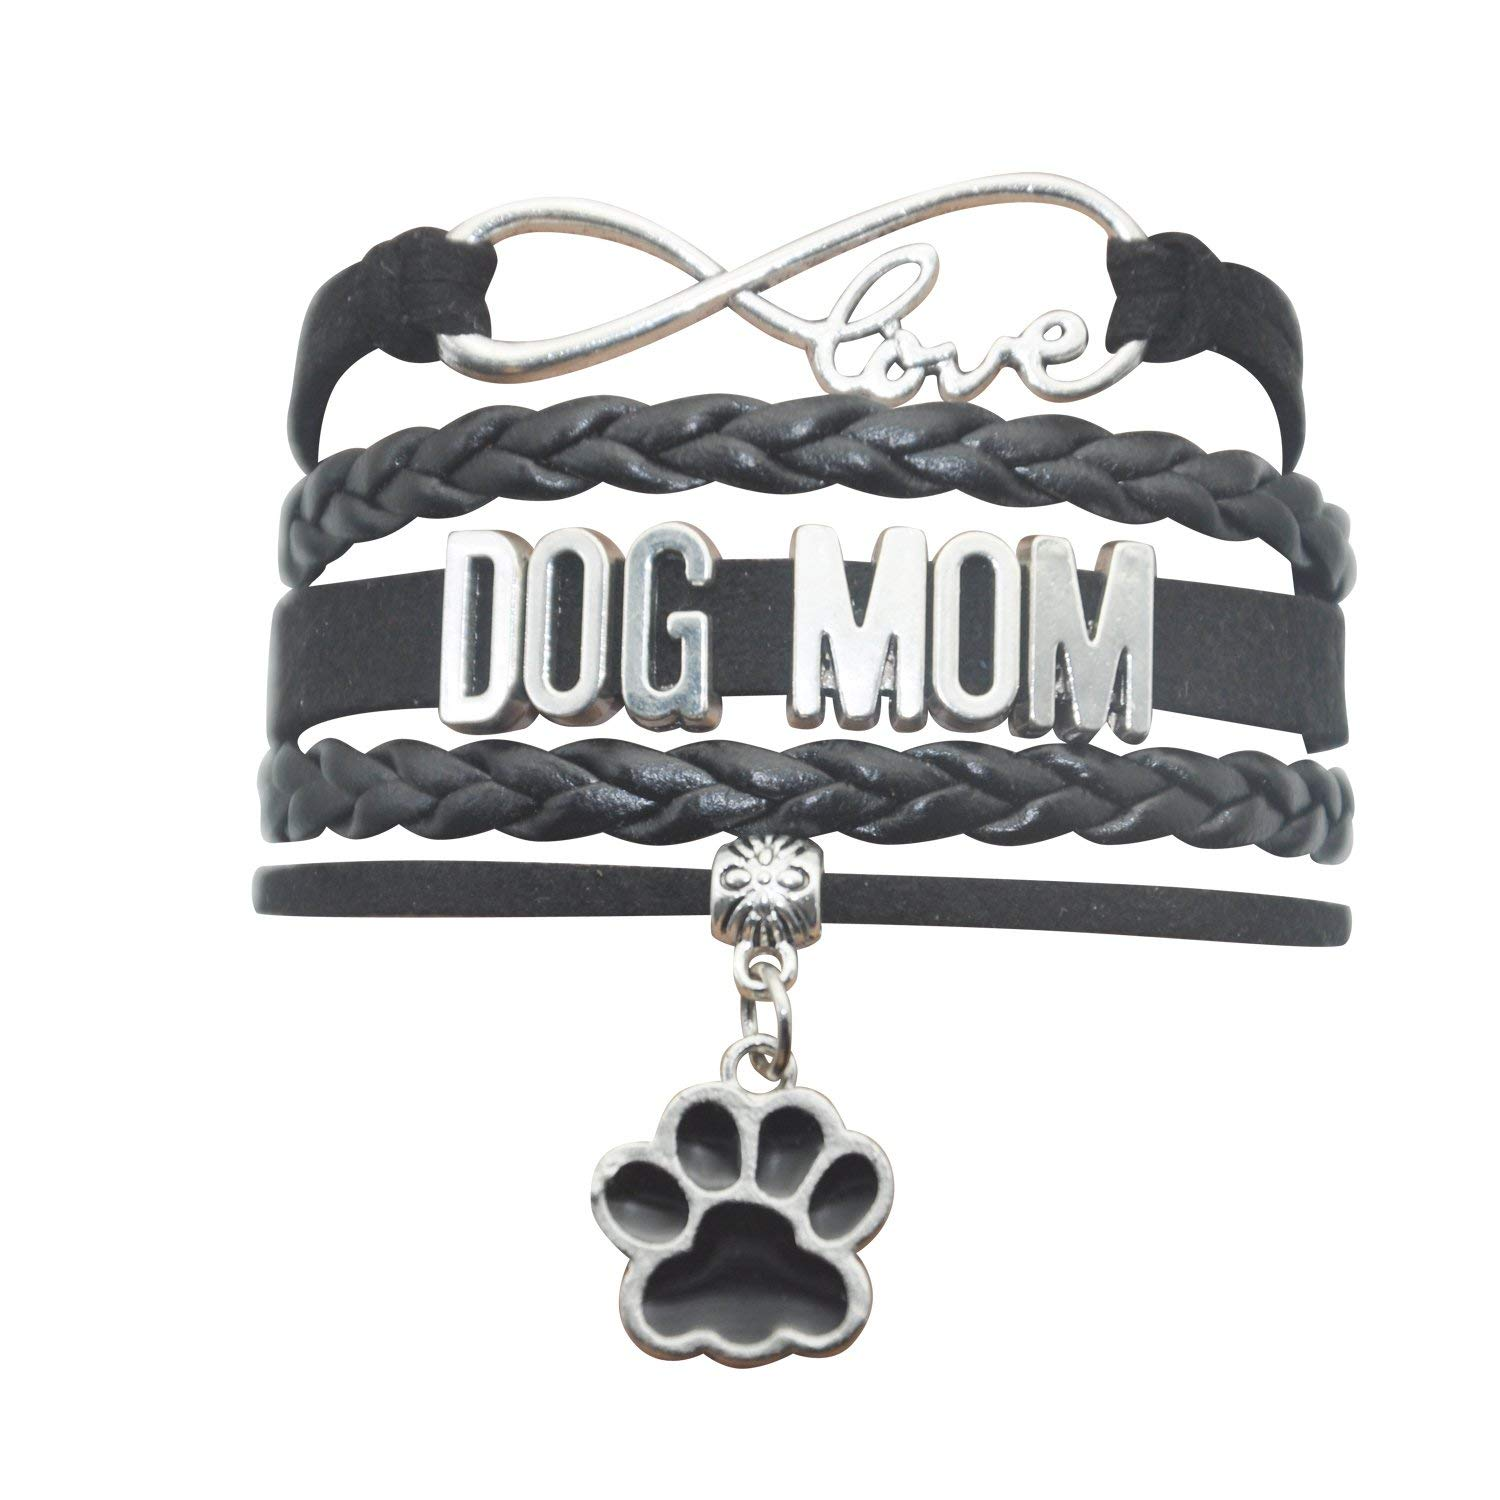 6d2b13ea8 Get Quotations · HHHbeauty Pet Dog Mom Paw Bracelet - Dog Memorial Paw  Charm Bracelet for Women,Men